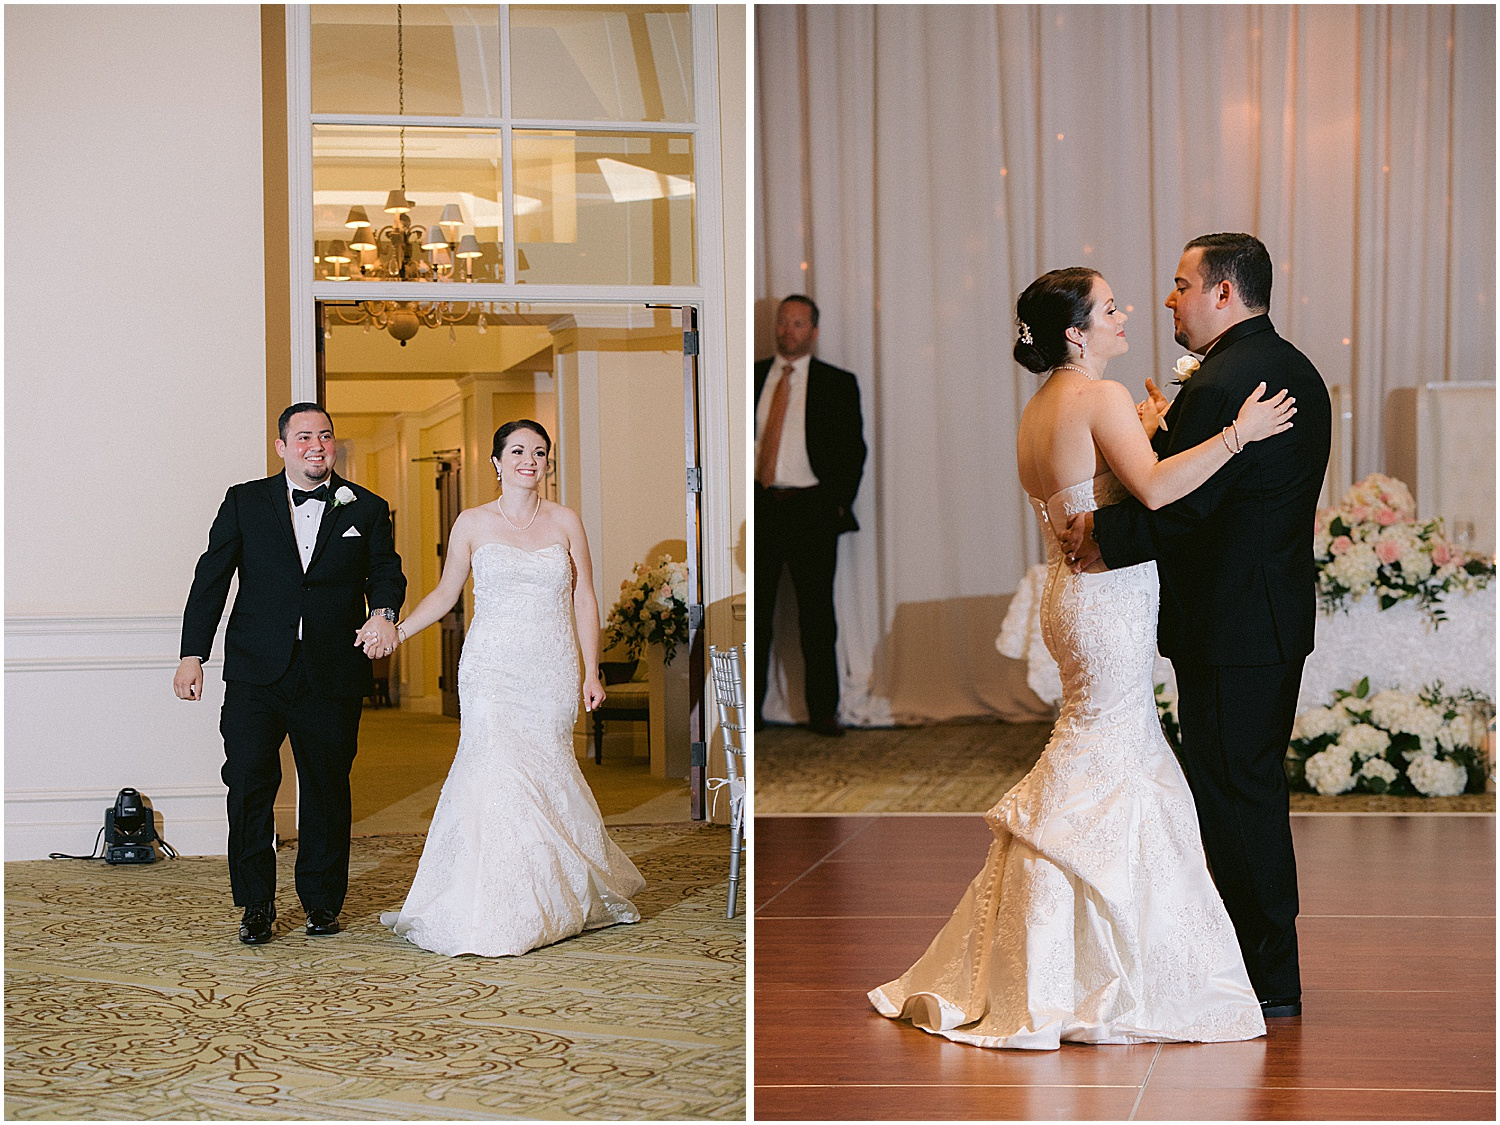 First dance at Willoughby Golf Club Wedding